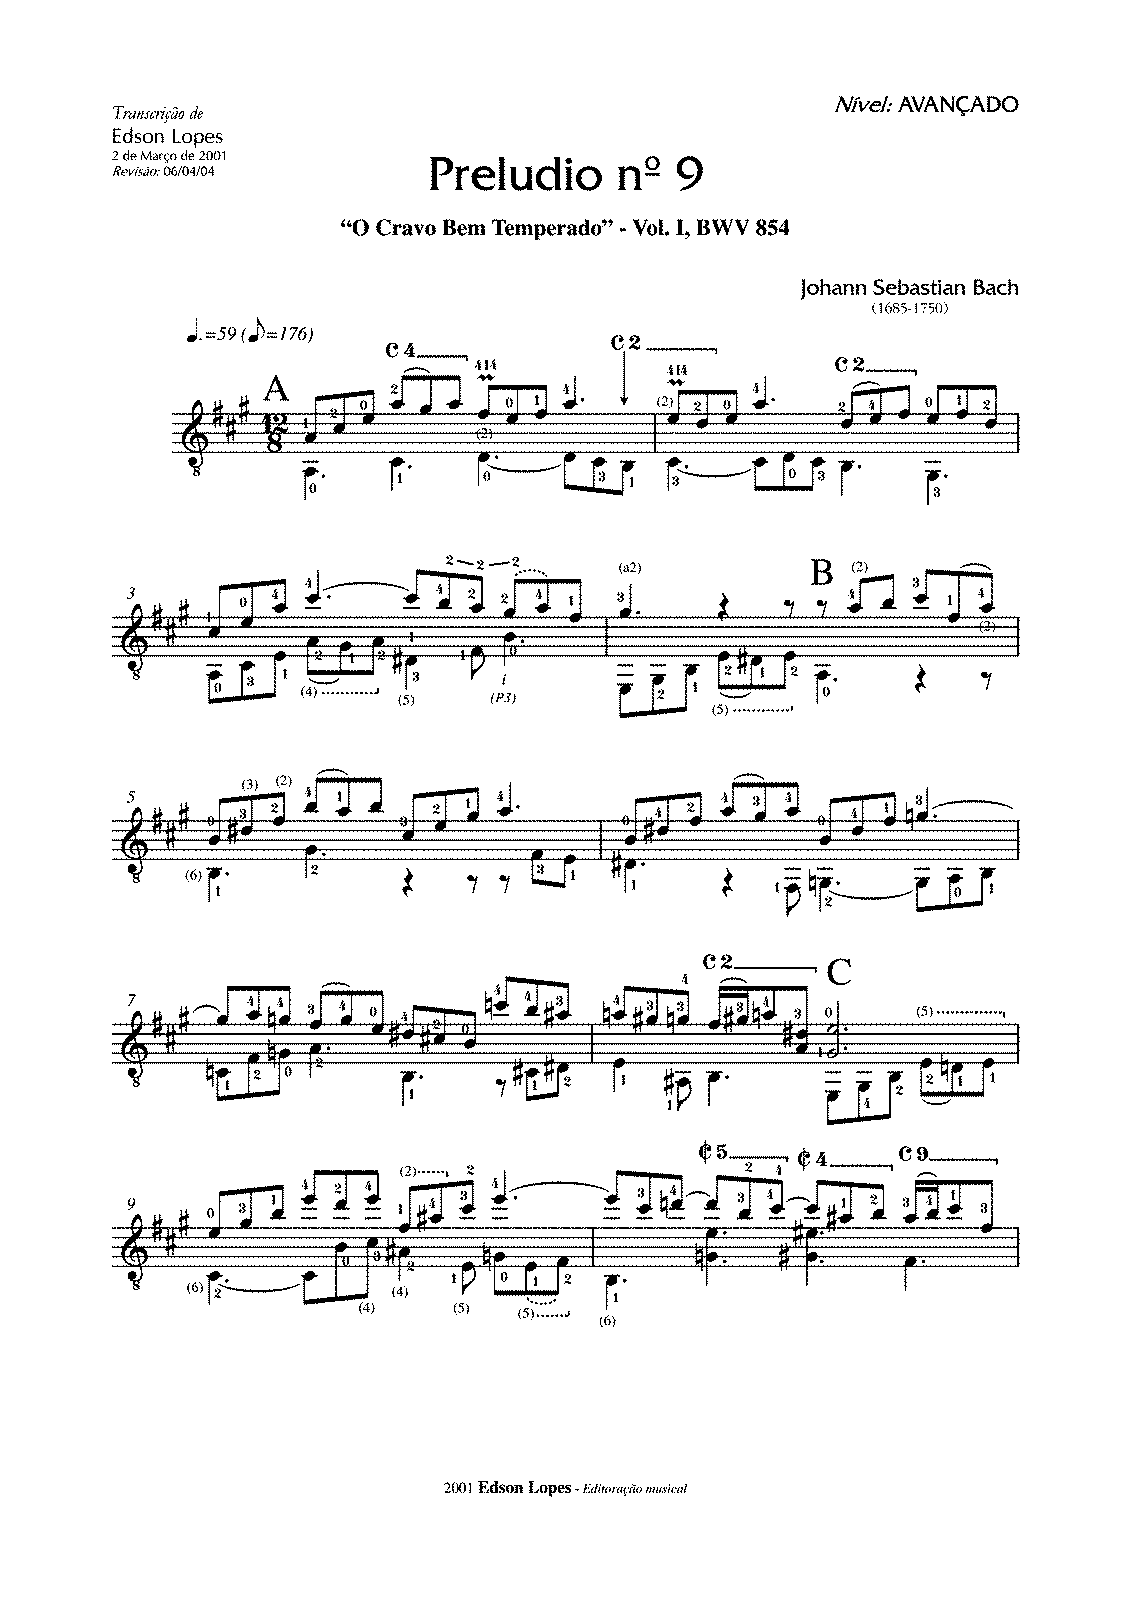 PMLP05948-Prelude No. 9 (The Well-Tempered Clavier, Book 1) (J. S. Bach).pdf